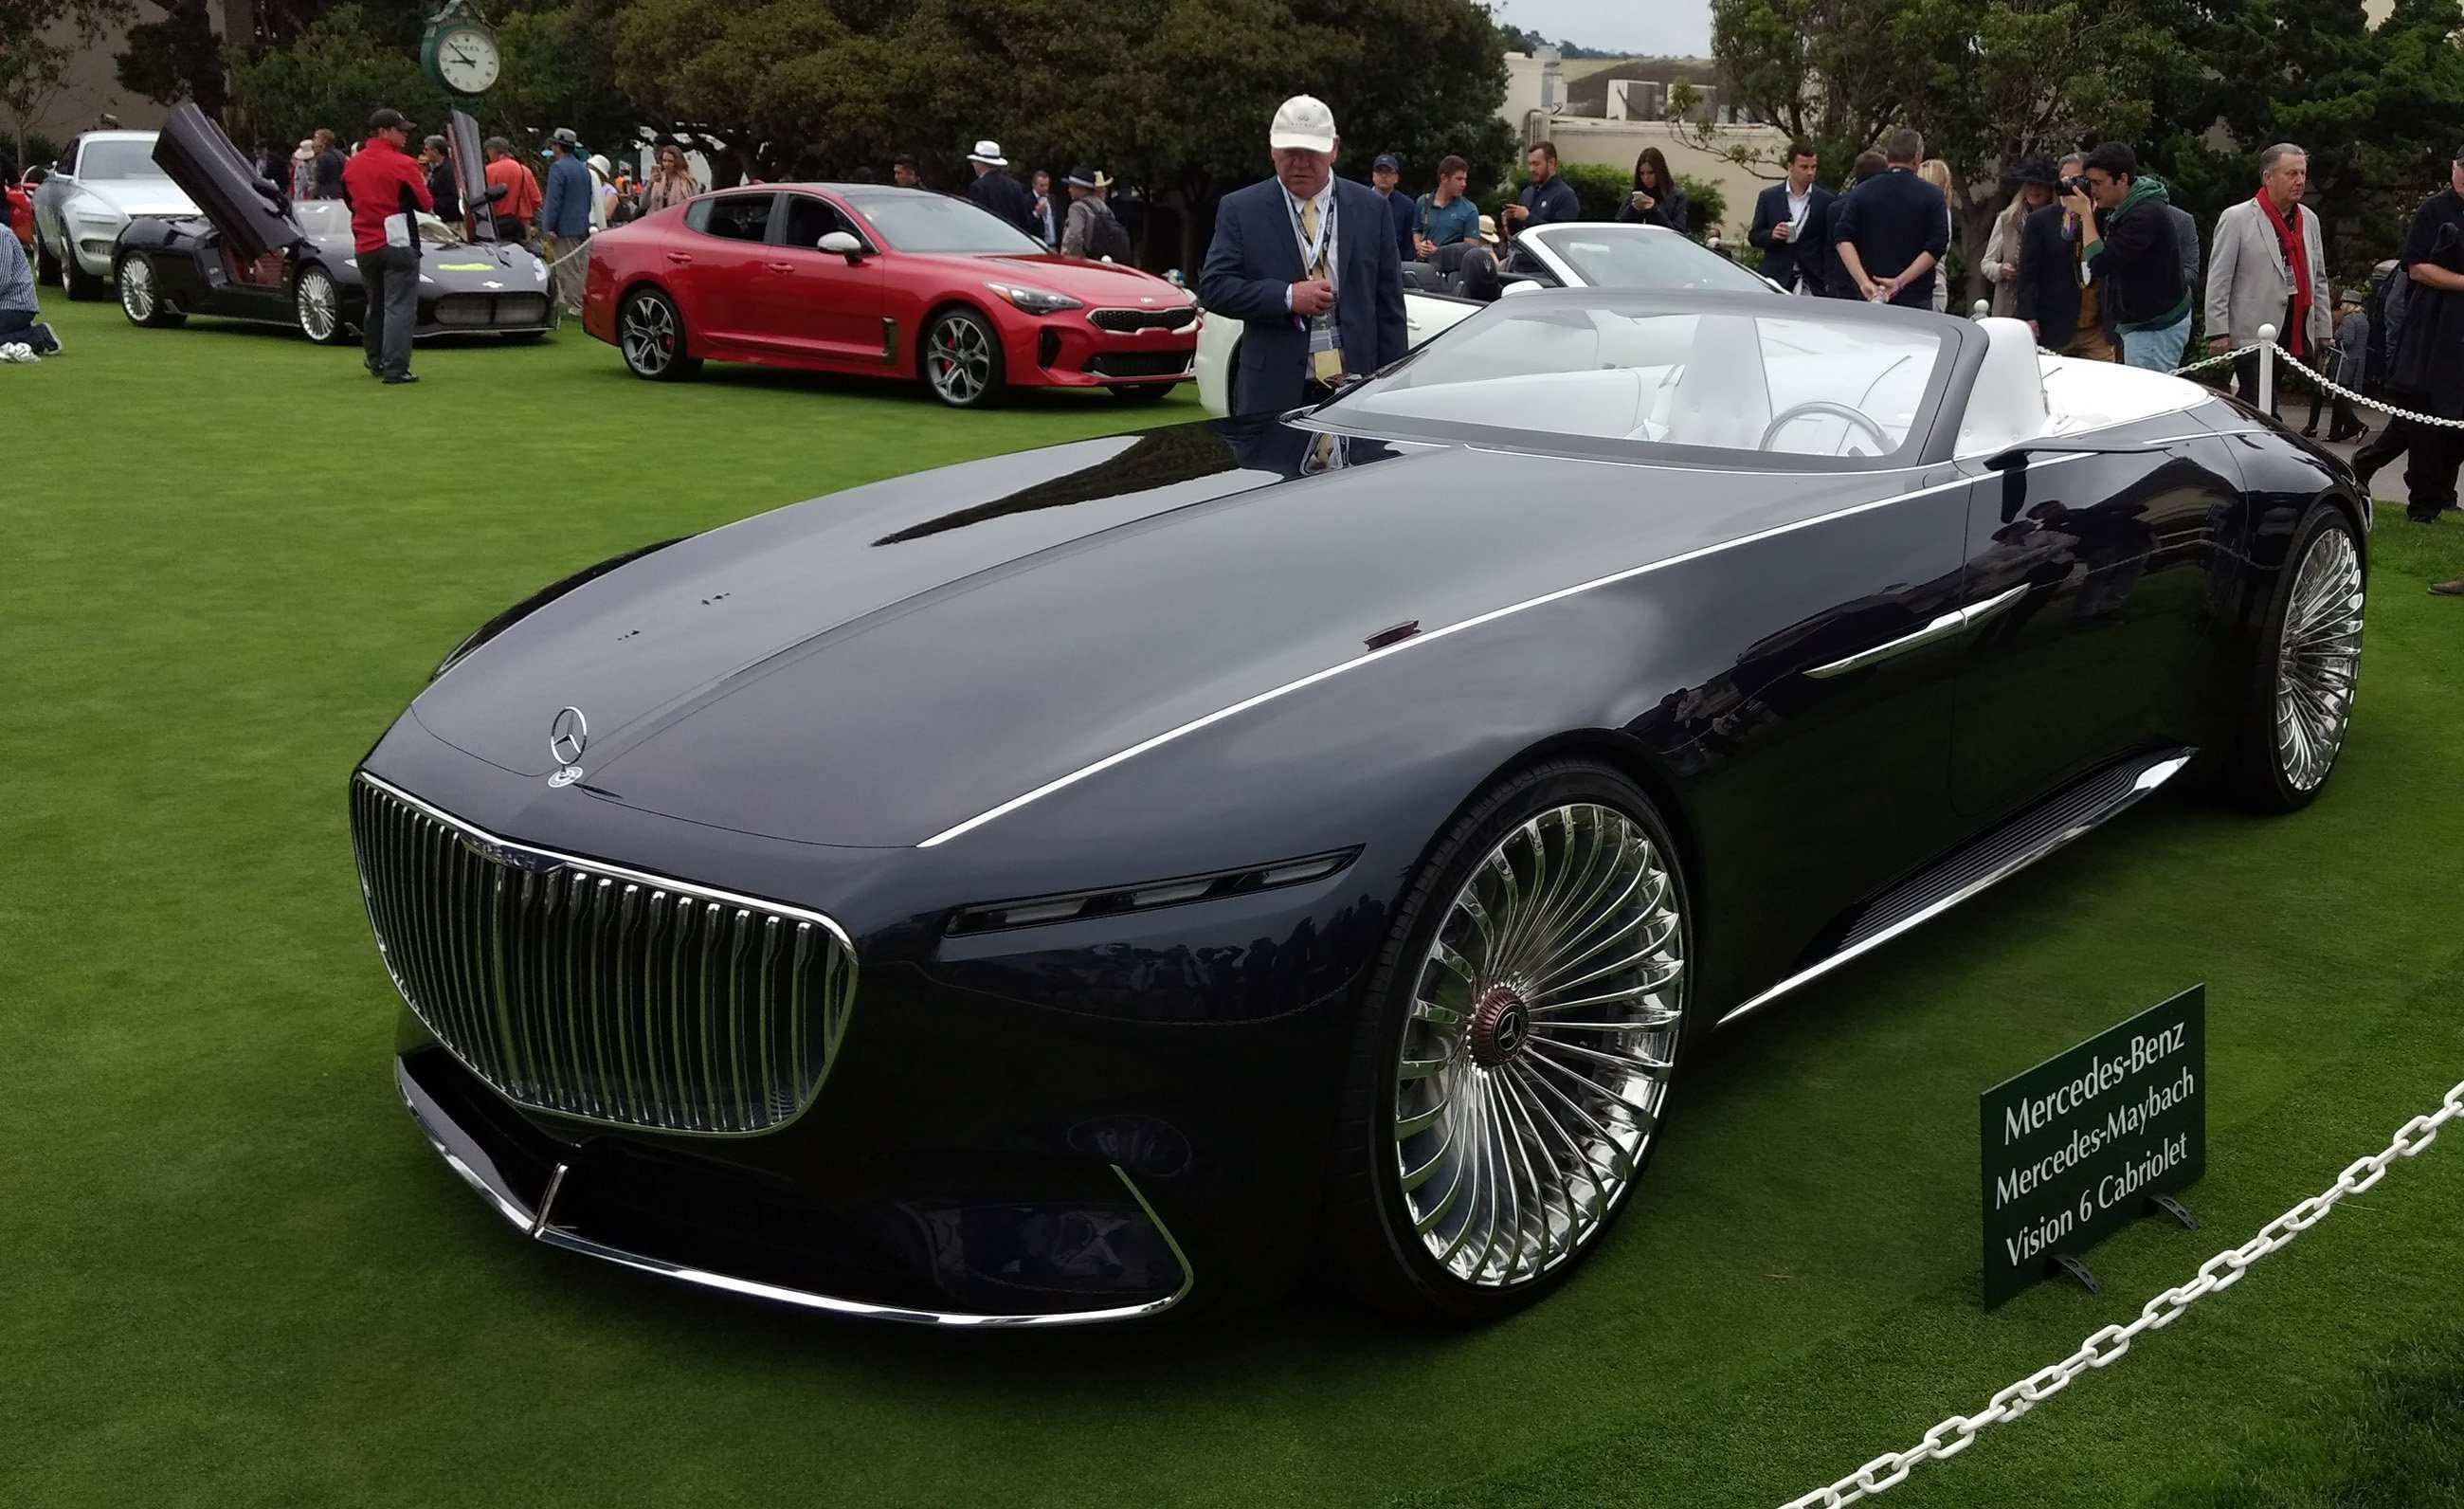 72 The Best 2019 Mercedes Maybach 6 Cabriolet Price History